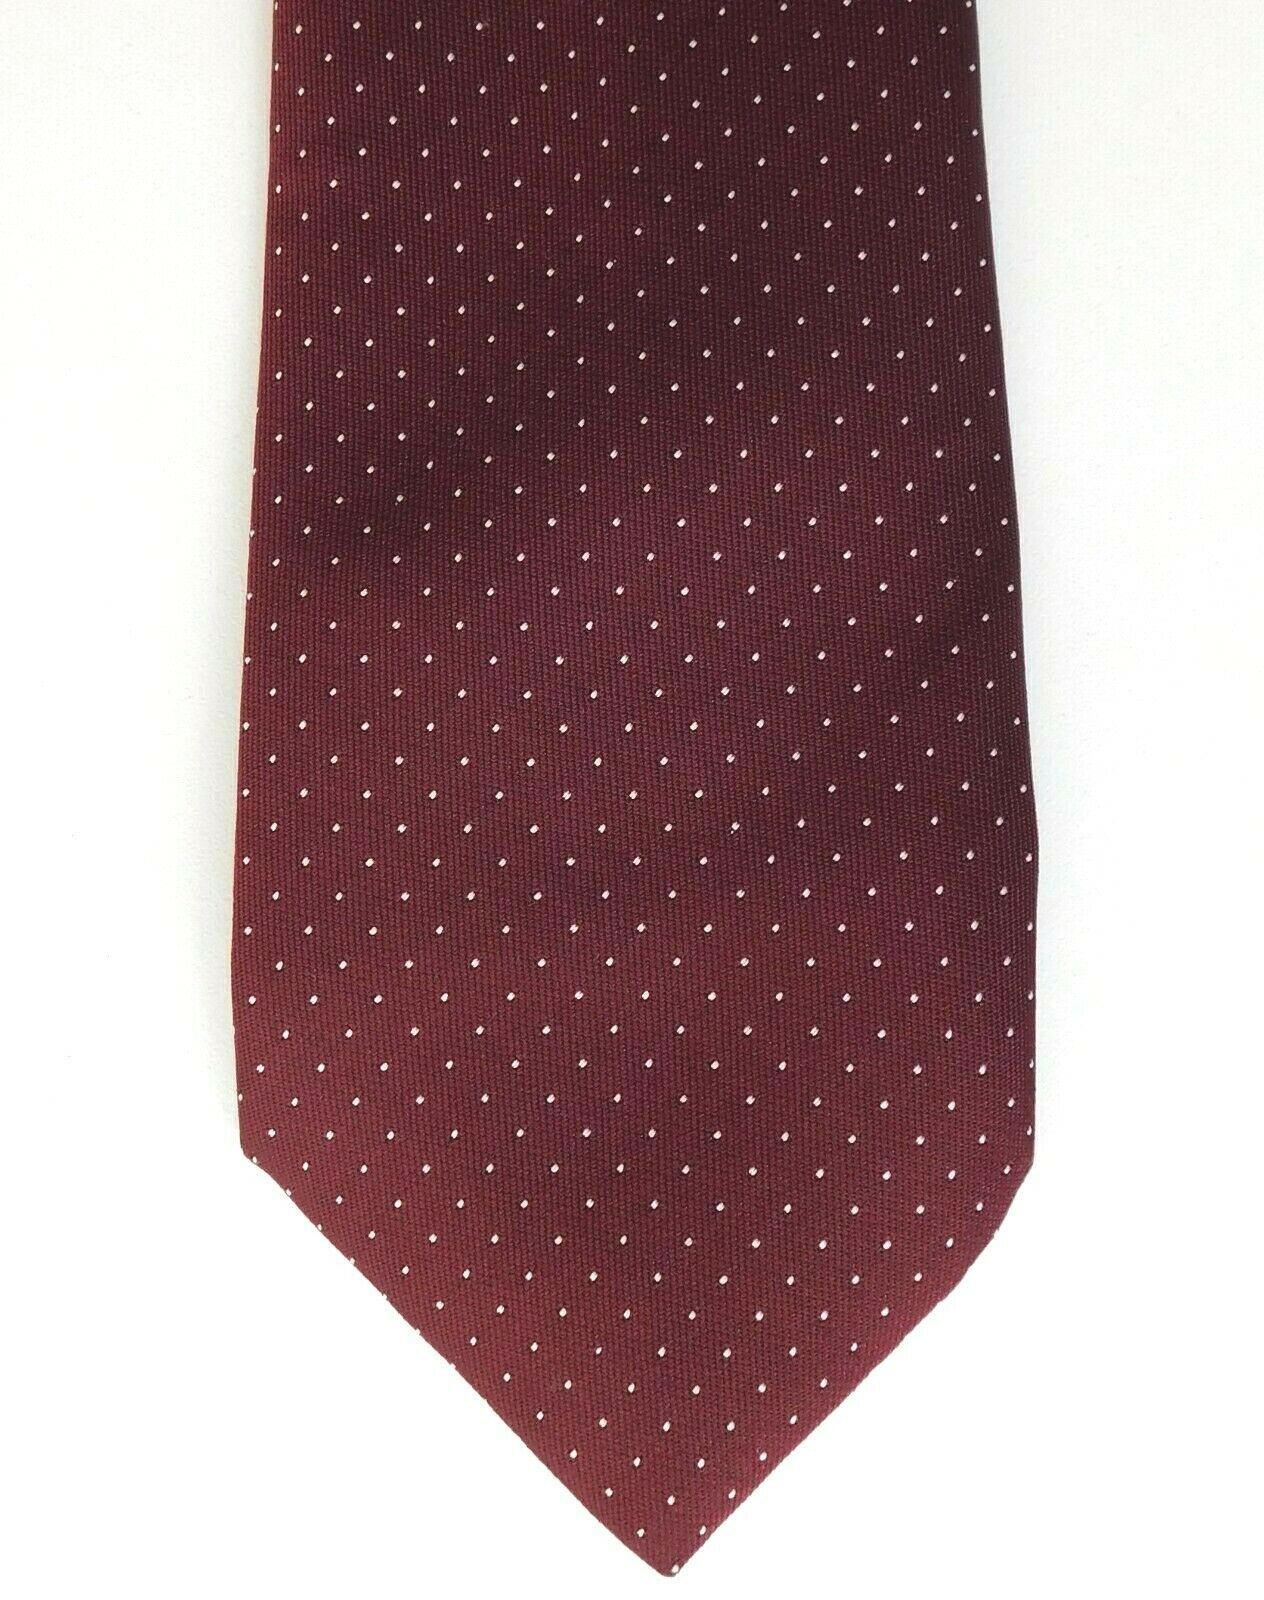 Tootal tie polka dots red with white spots made in England 1980s